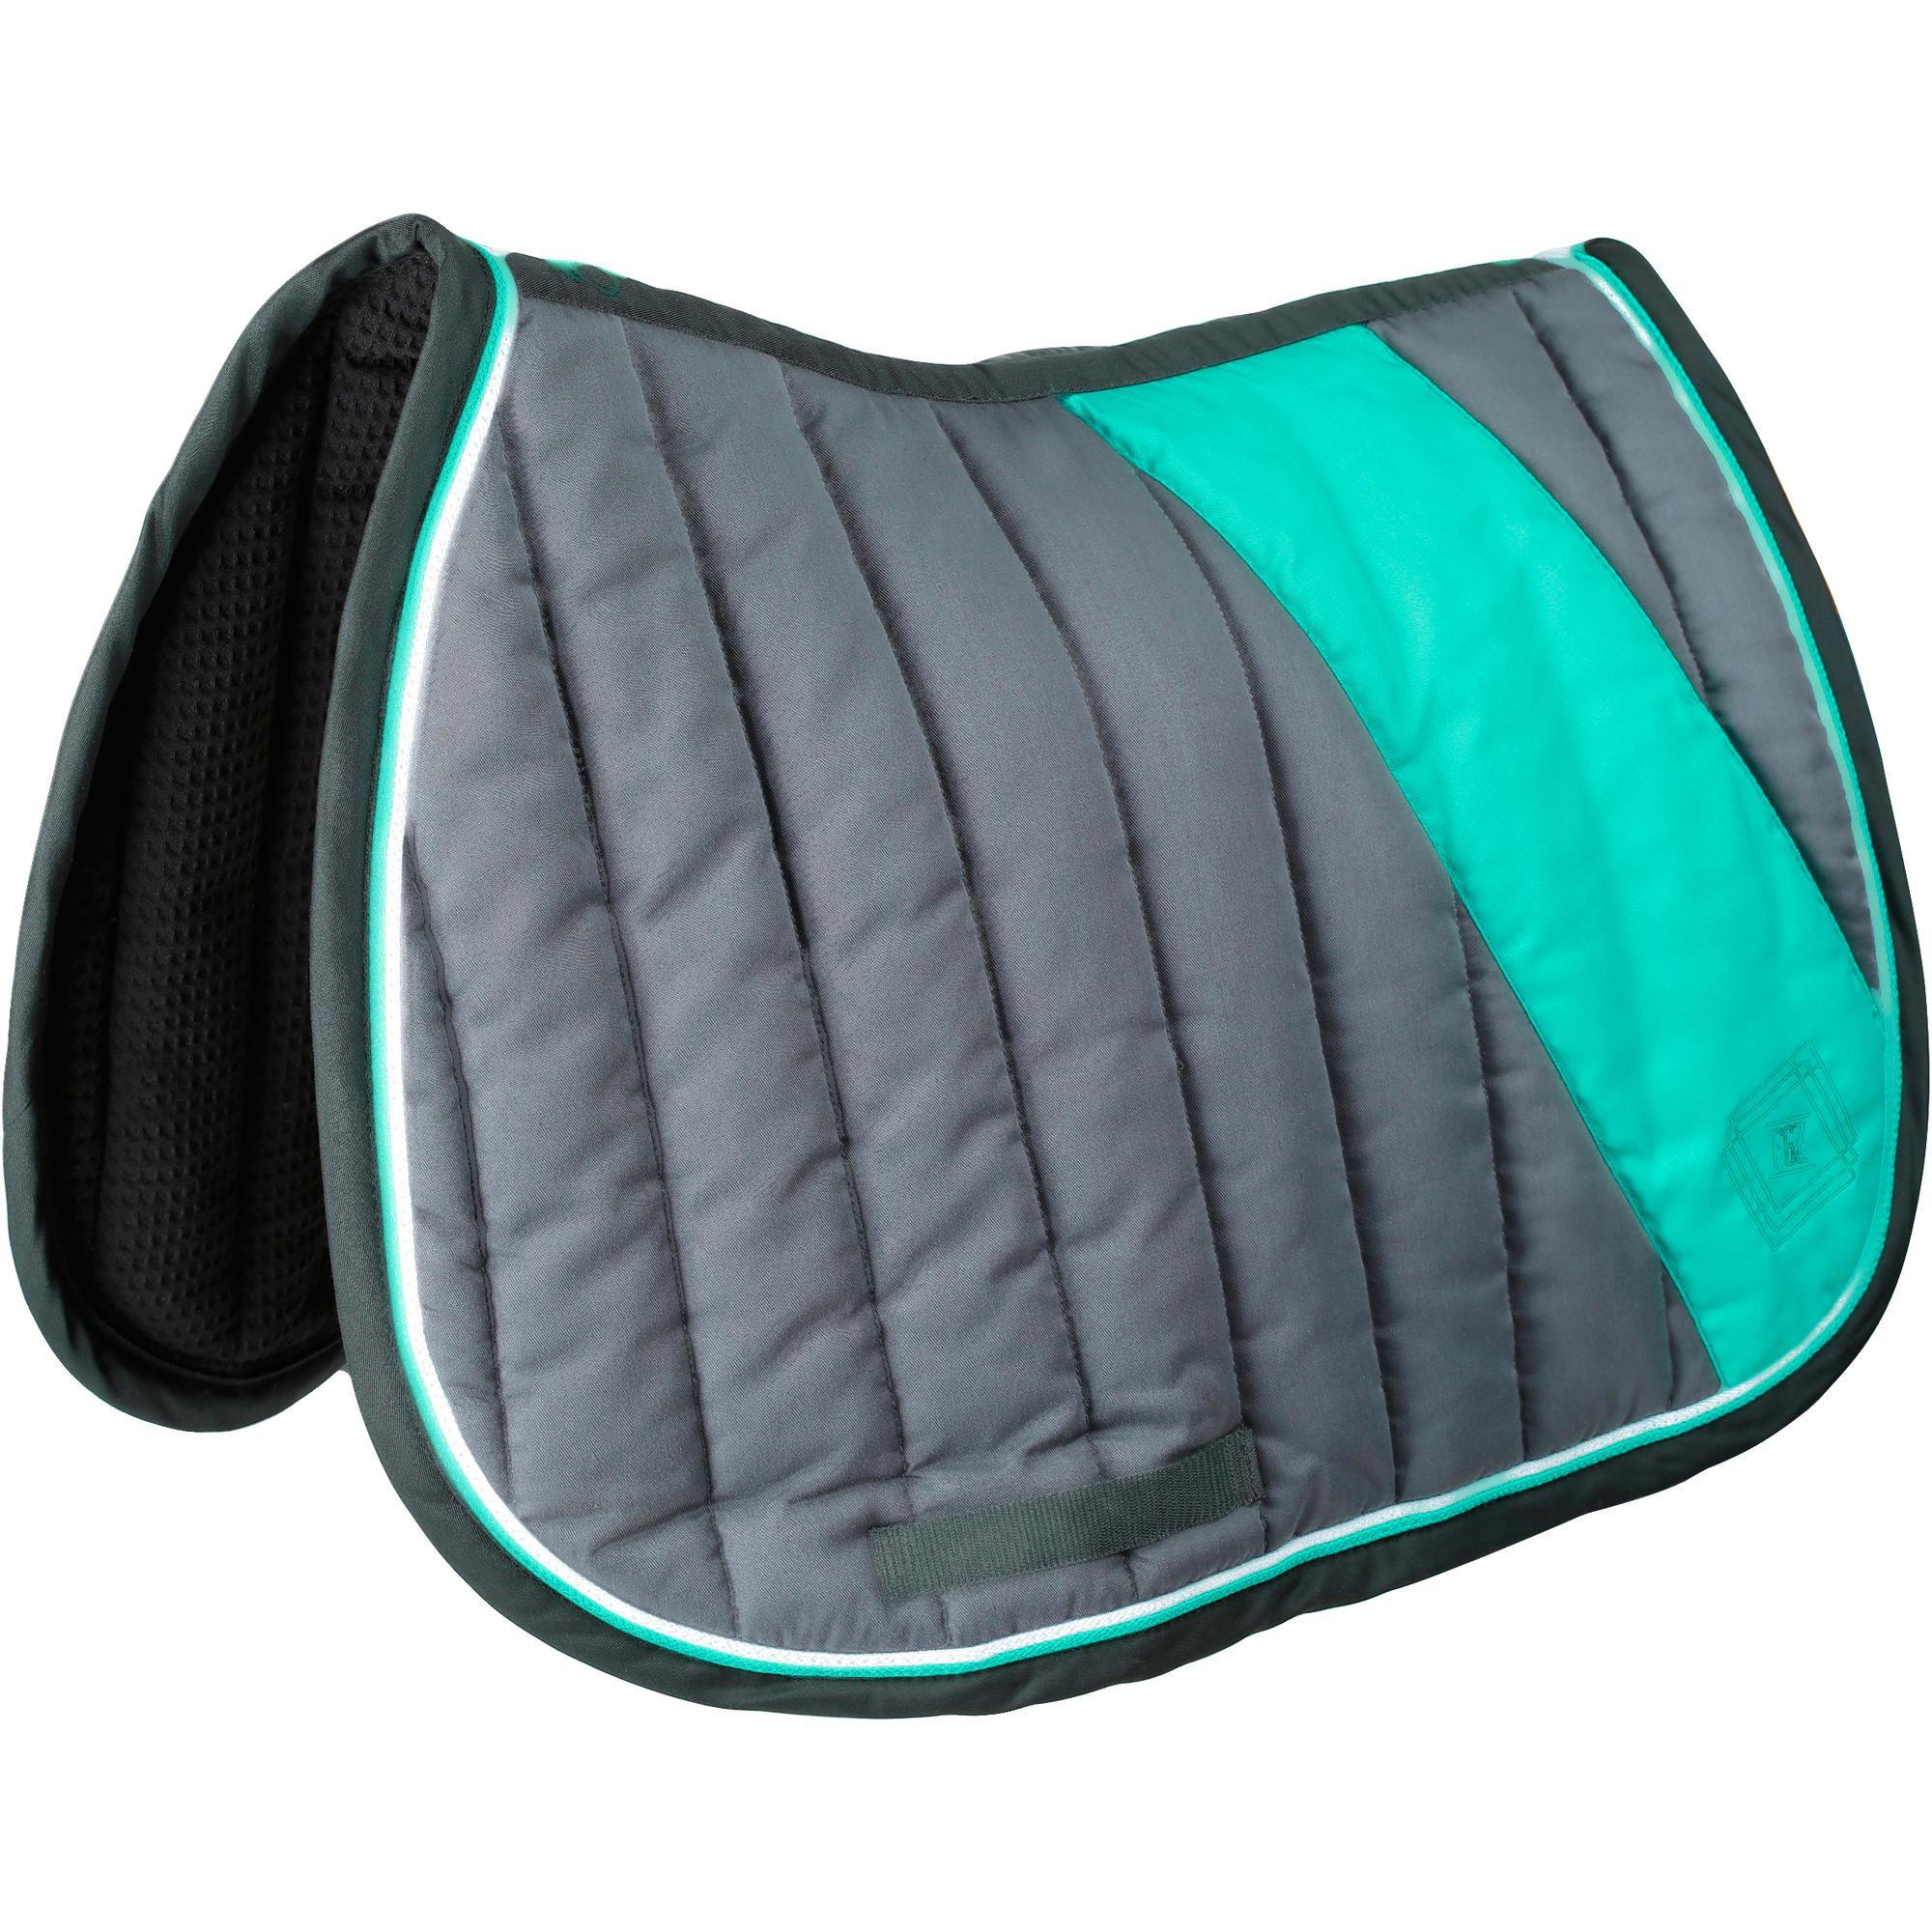 Tapis de selle quitation cheval jump vert fouganza Tapis cheval decathlon